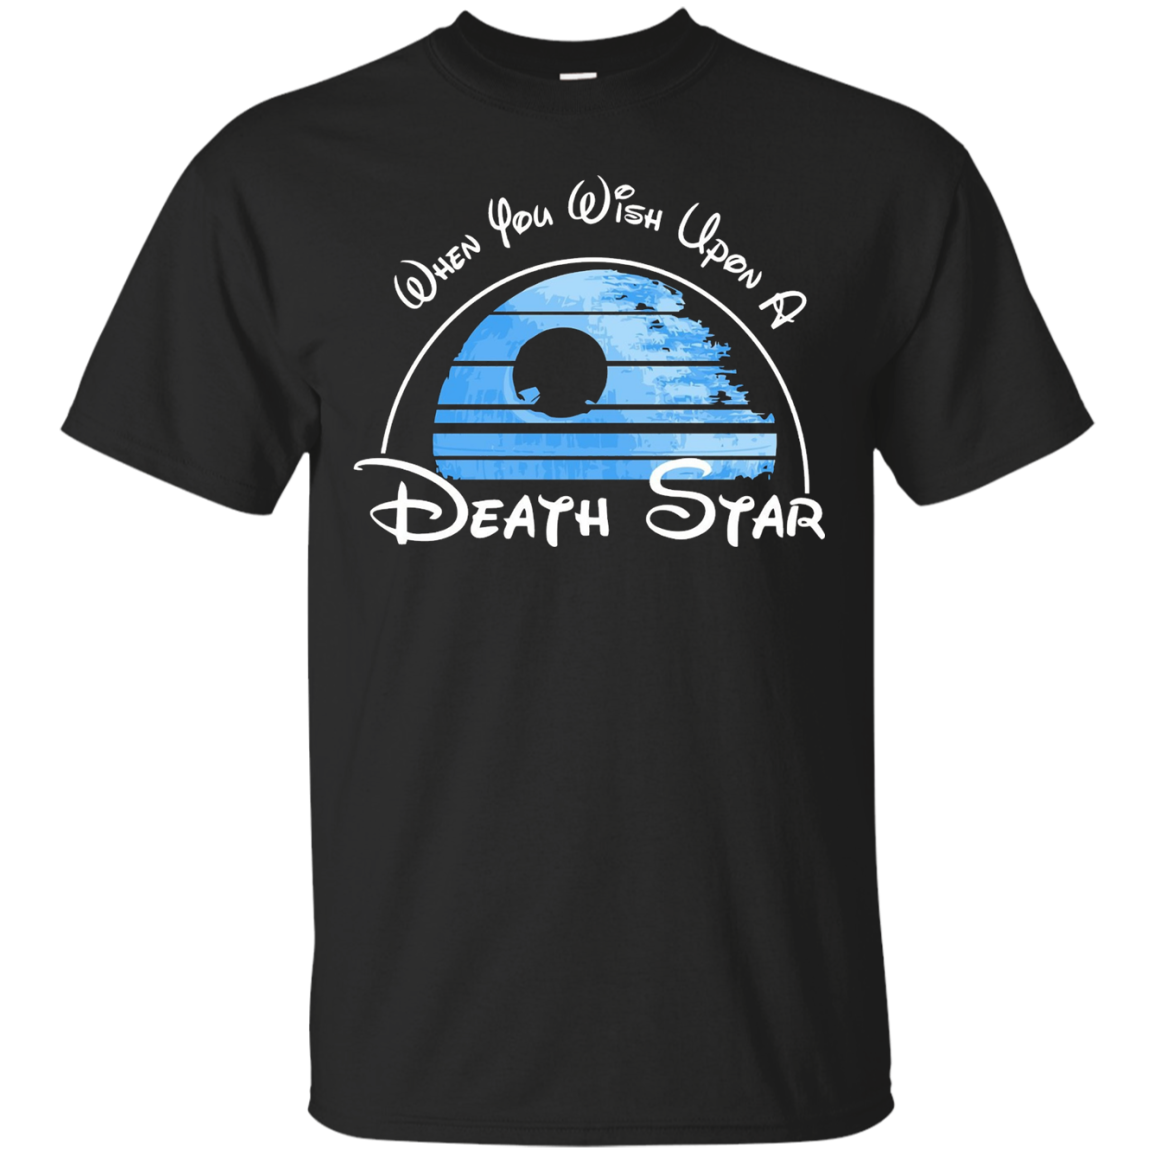 When You Wish Upon A Death Star - T-Shirt